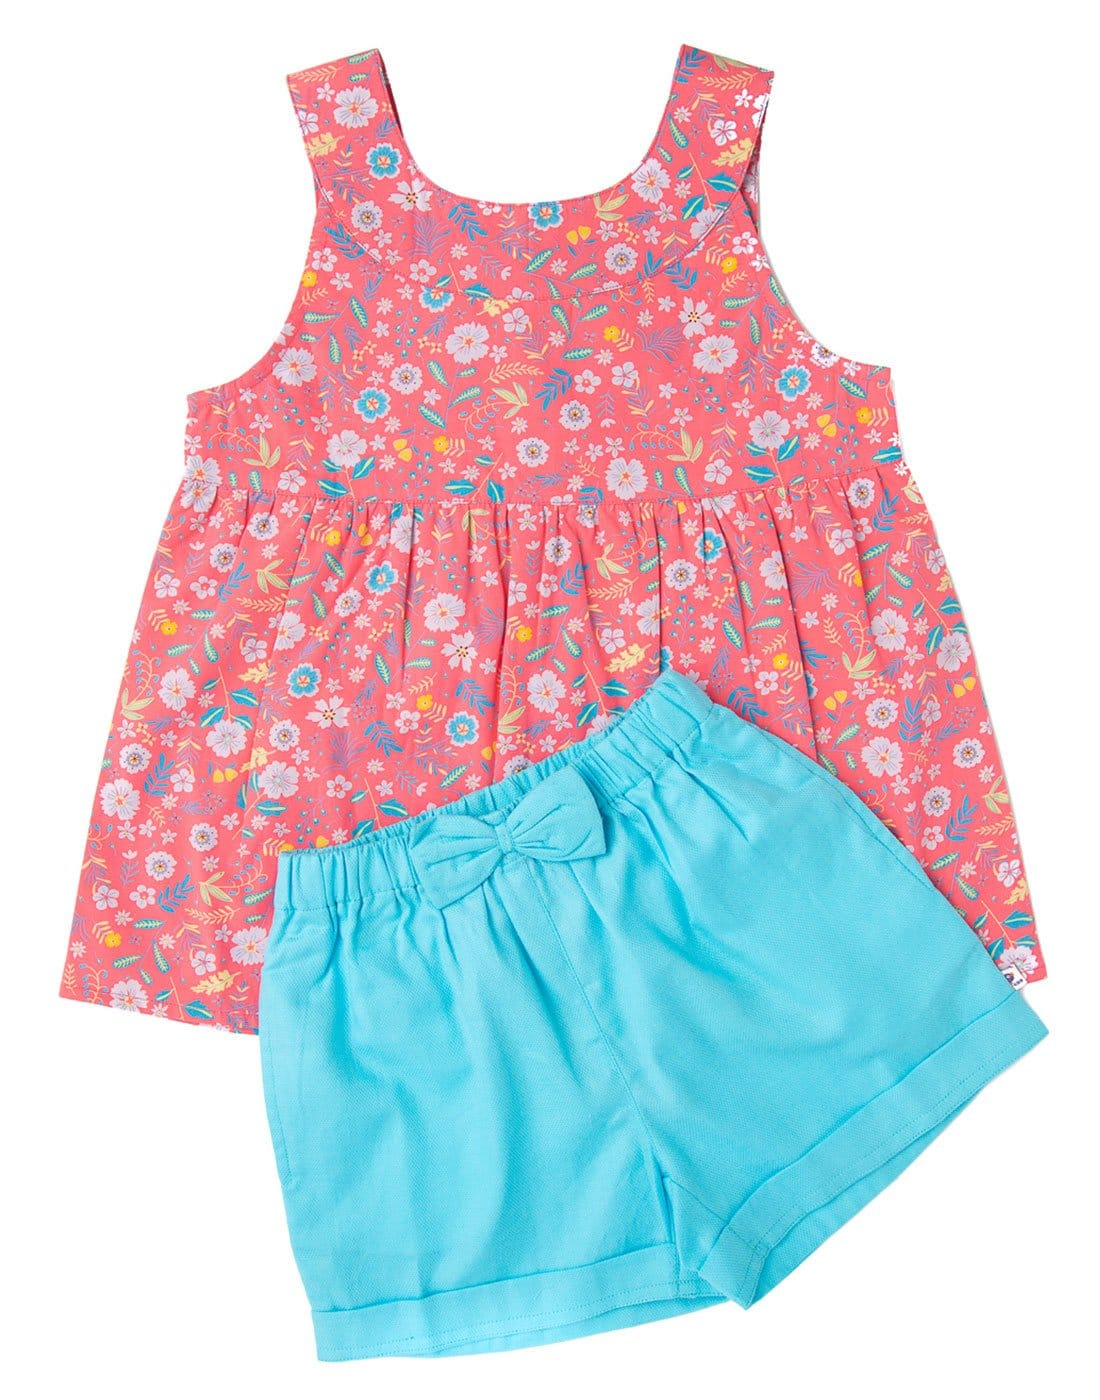 Candy Pink Printed Floral Top With Blue Shorts